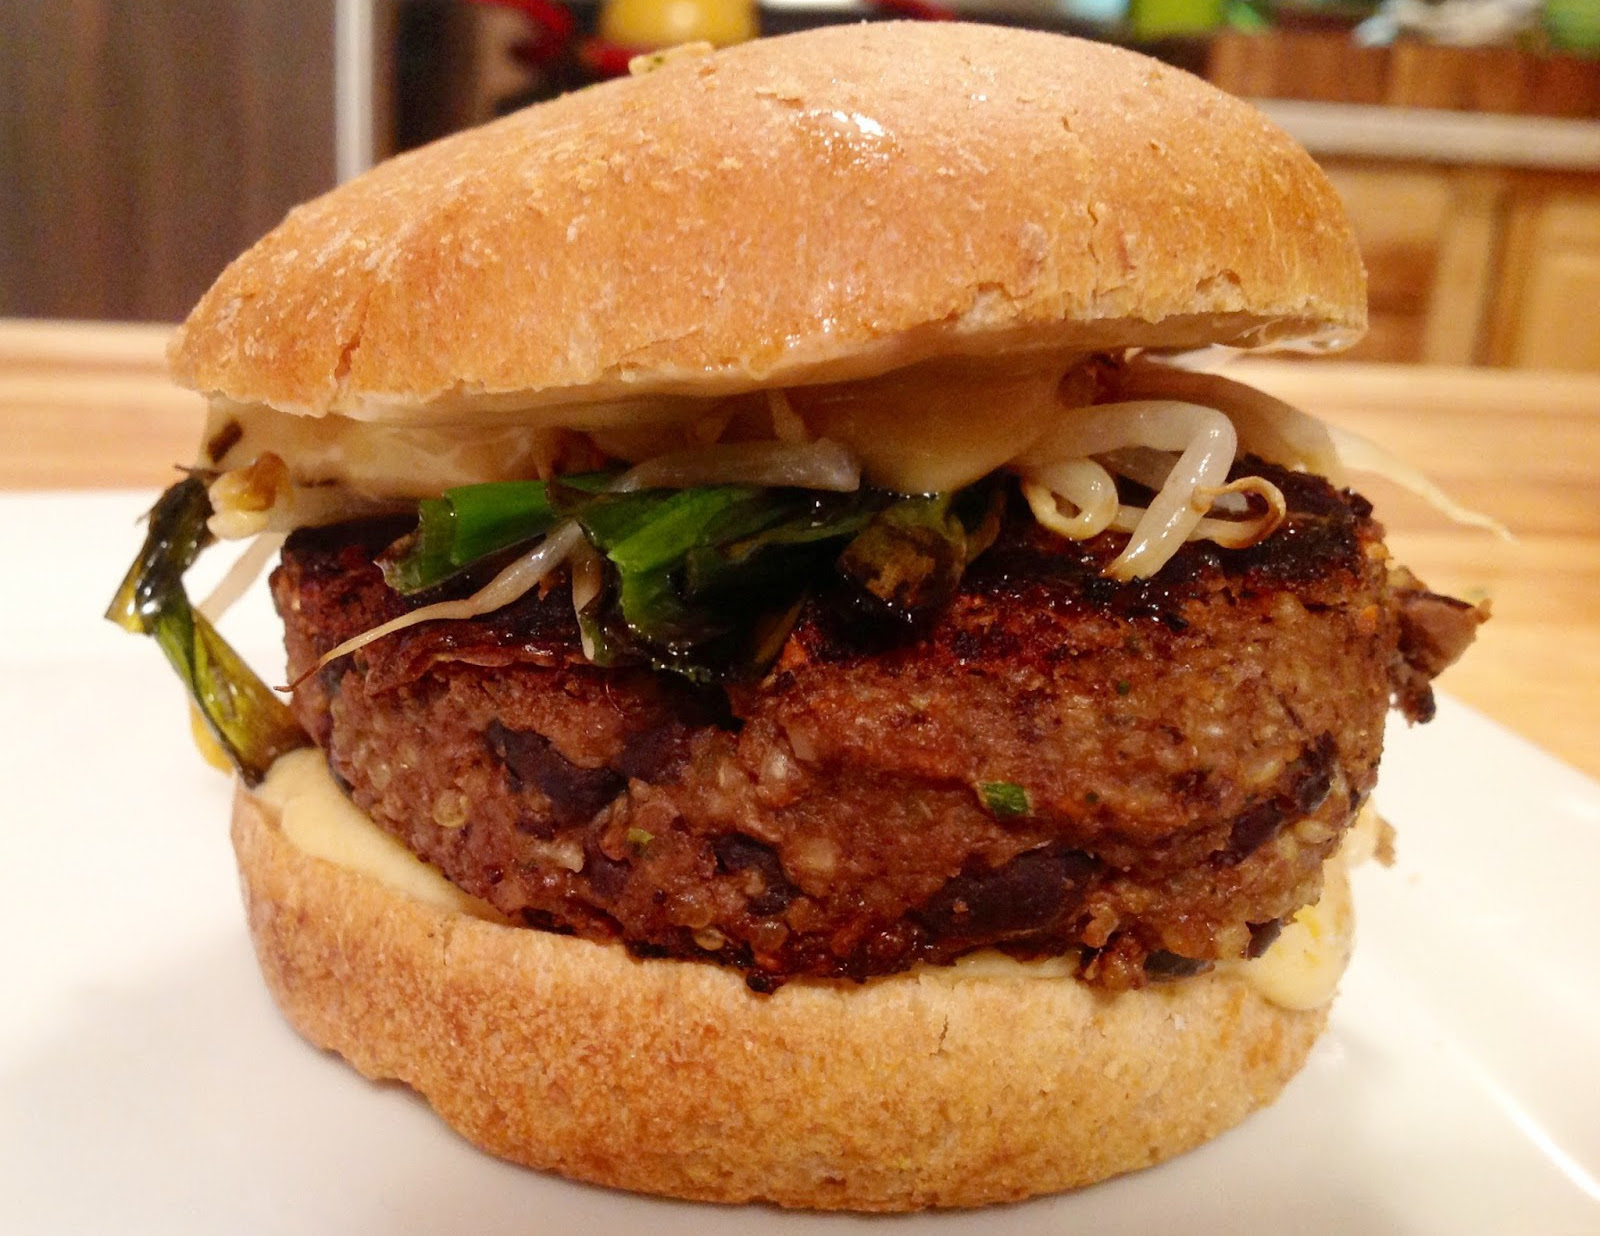 10 Vegetables You Can Make Burgers With